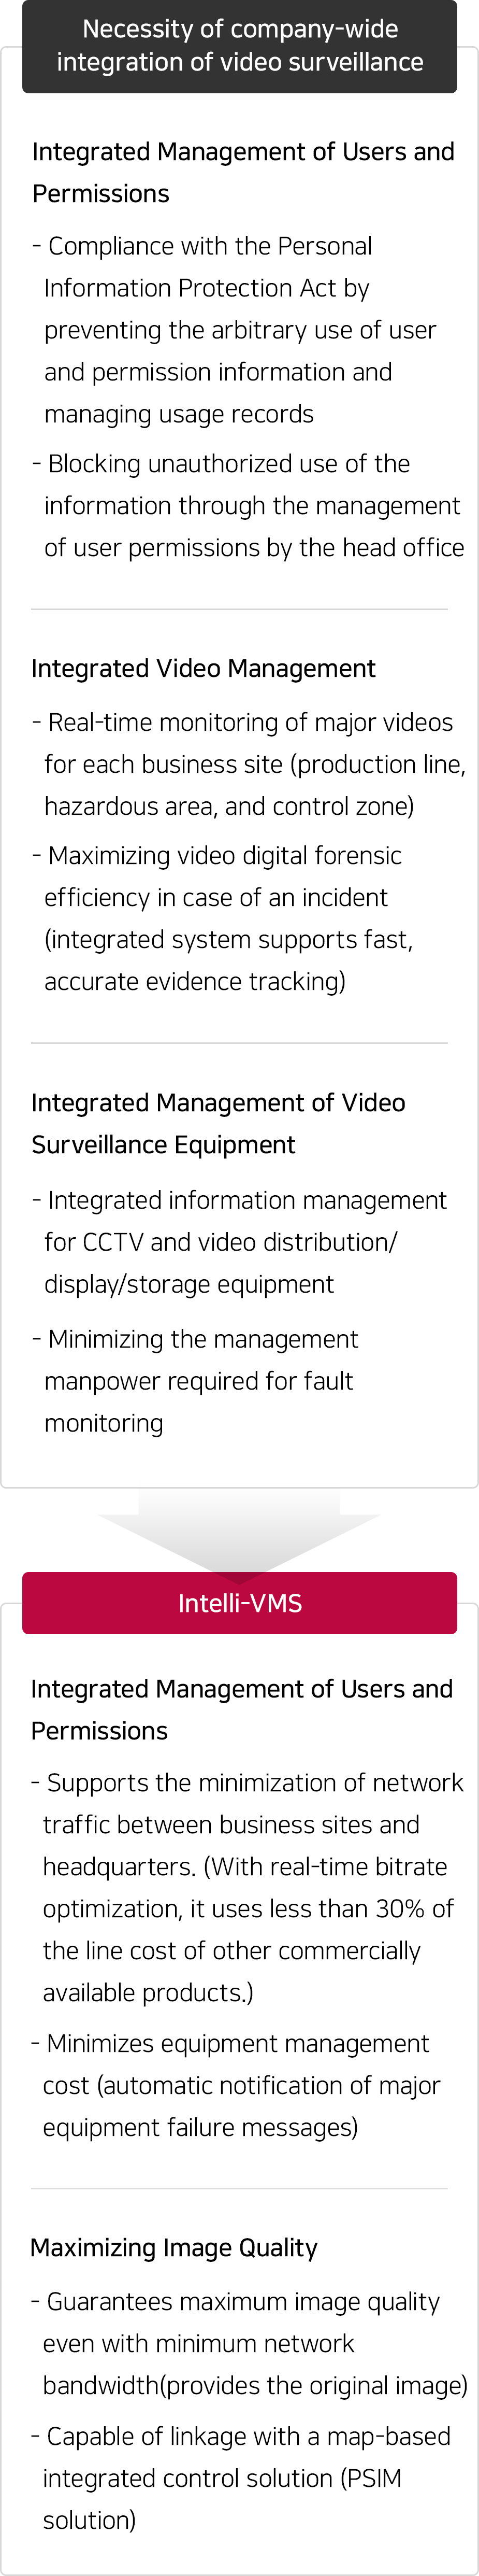 It provides a solution that minimizes the video surveillance operation cost and integrates and manages images with the desired video quality.